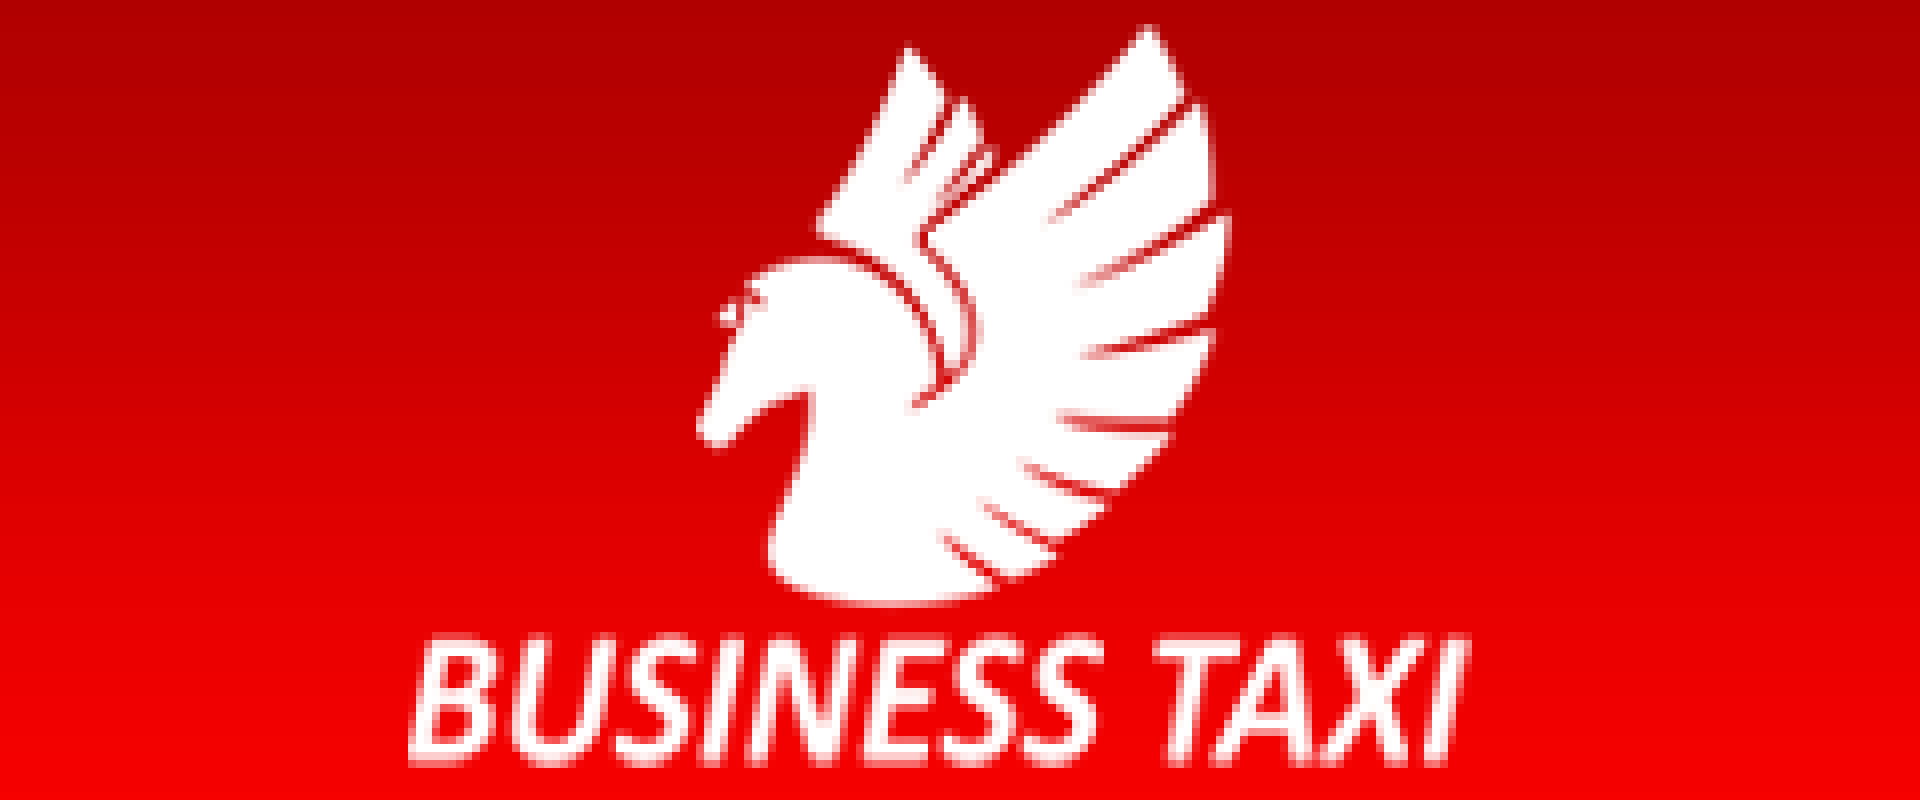 Фото Business taxi - Алматы.